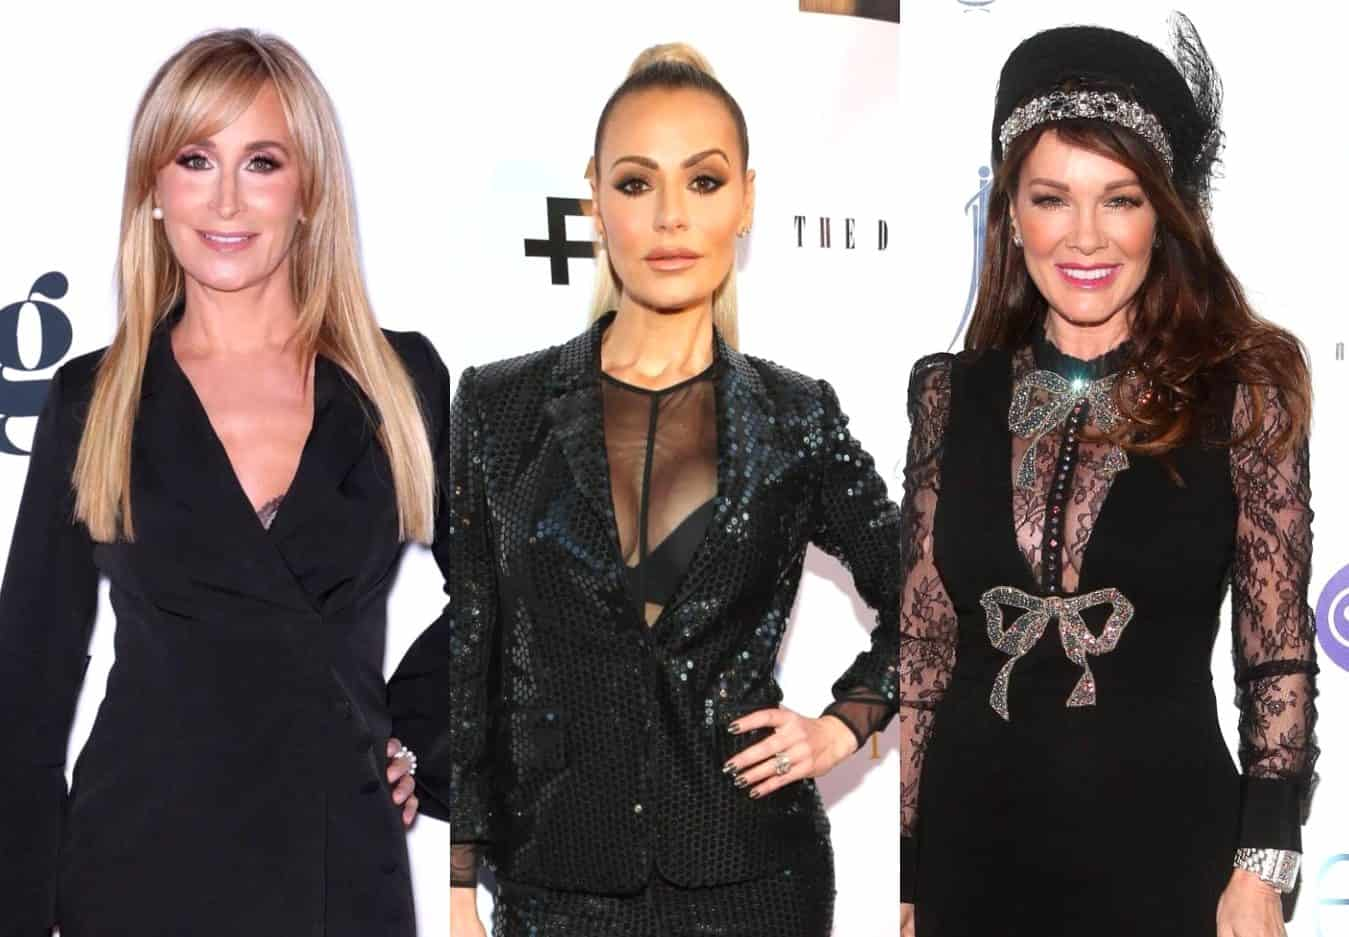 RHONY's Sonja Morgan Shades Dorit Kemsley for Claiming She's Following in Lisa Vanderpump's Footsteps, Wonders Who She Even is as She Requests LVP Fill Her In